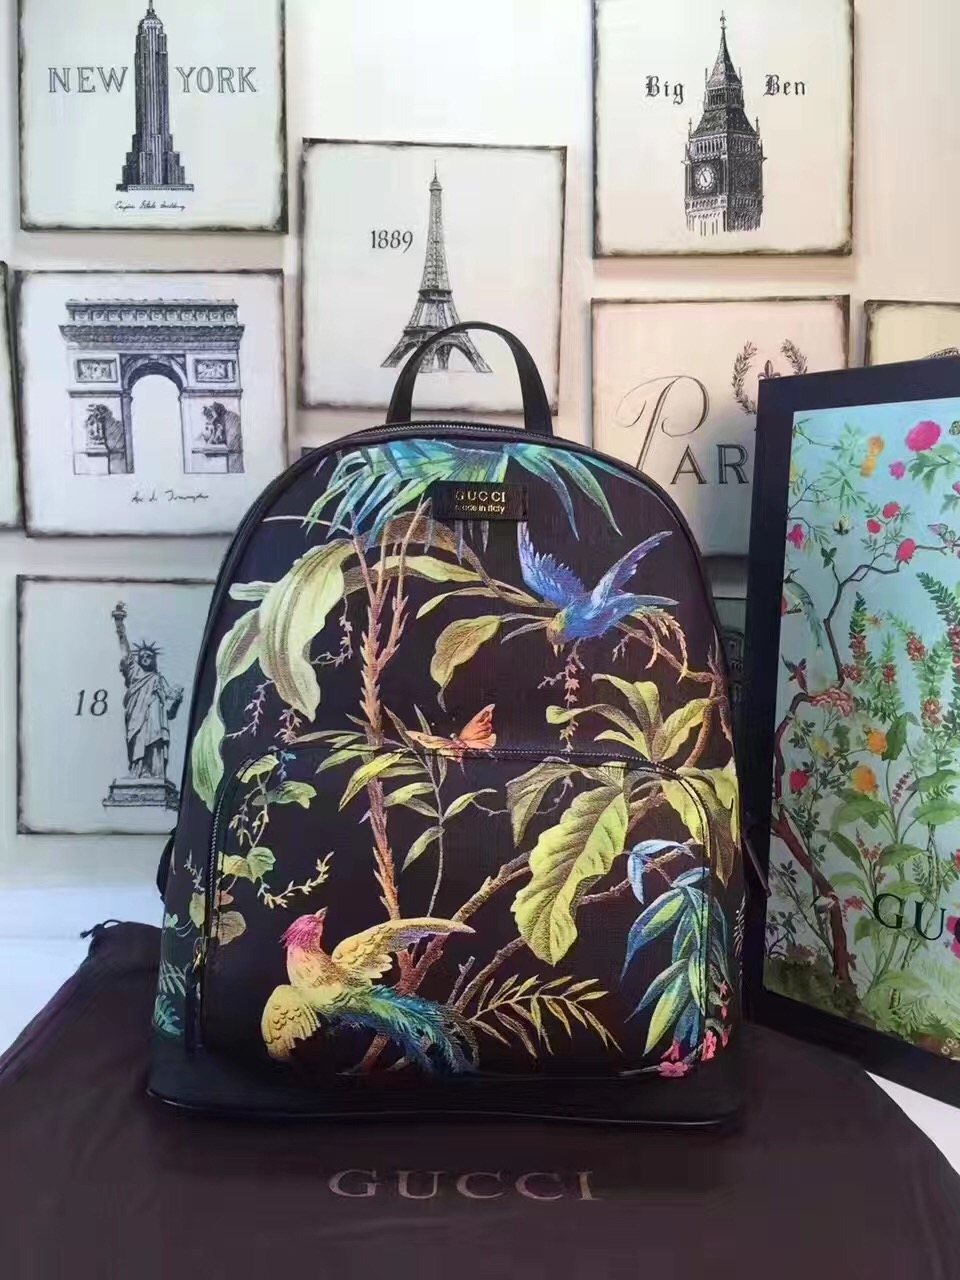 6cd6e35b3617 Gucci large backpack flower black with handbags  GG205  -  222.00 ...